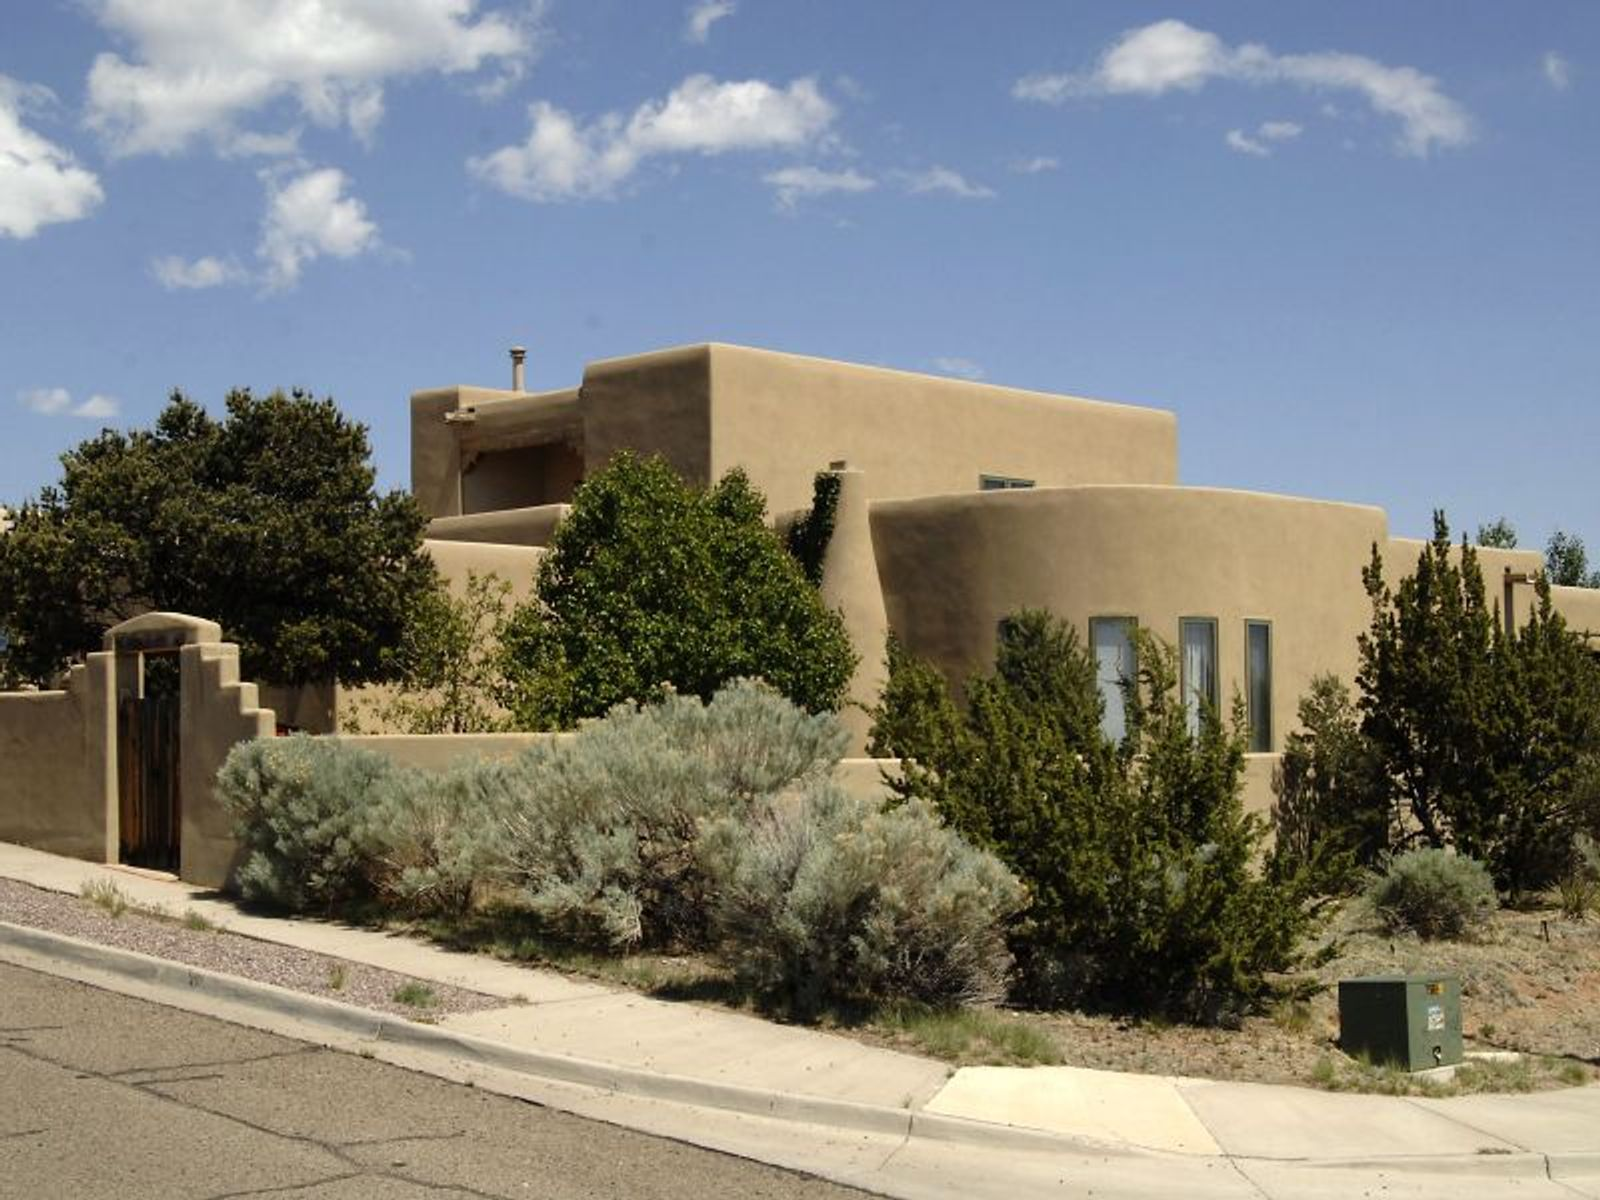 2925  Pueblo Tsankawi, Santa Fe NM Single Family Home - Santa Fe Real Estate